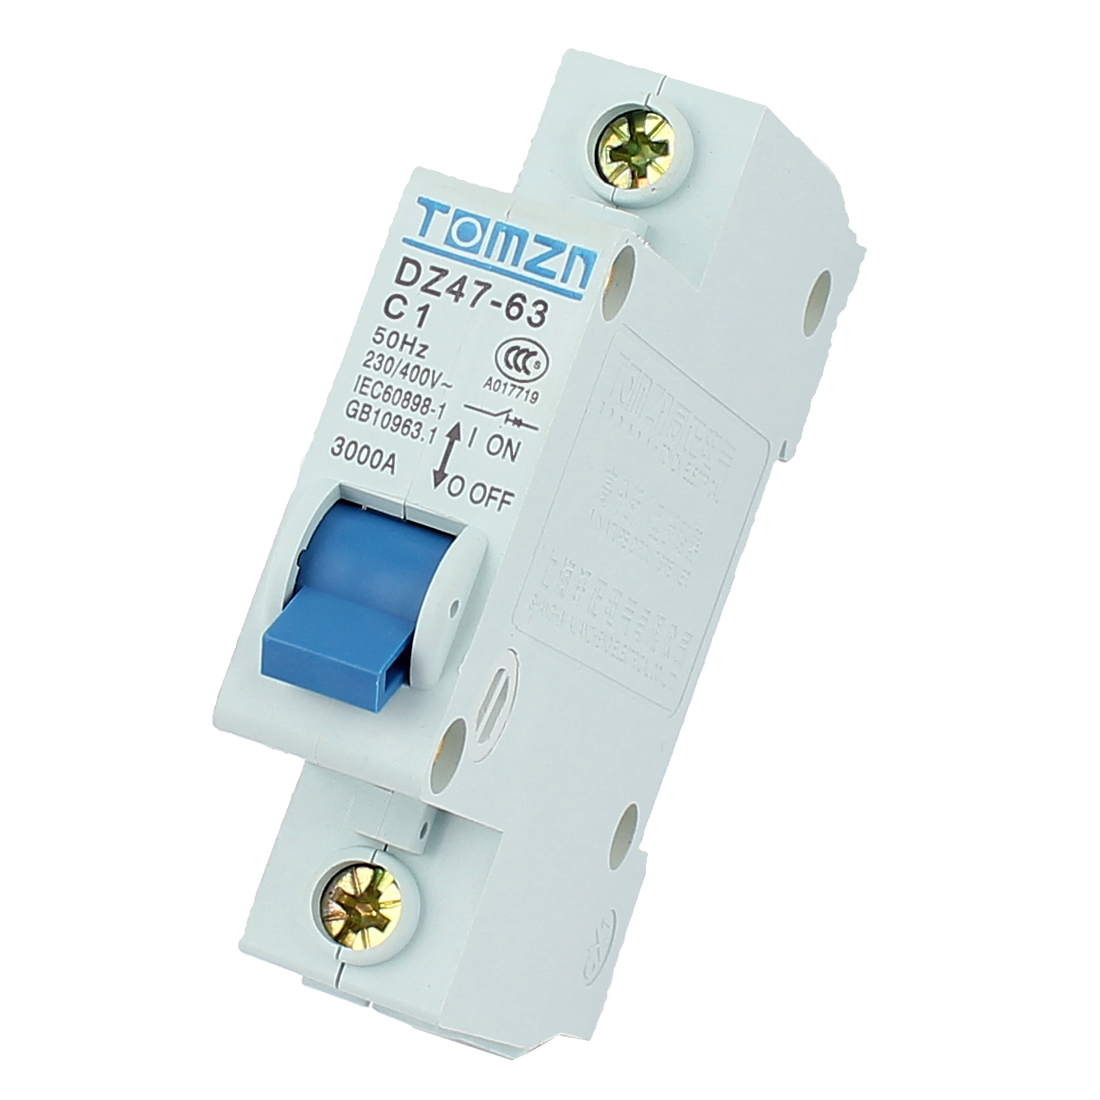 AC 230/400 1A 3000A Breaking Capacity 50Hz 1P ON/OFF Safety Switch Miniature Circuit Breaker